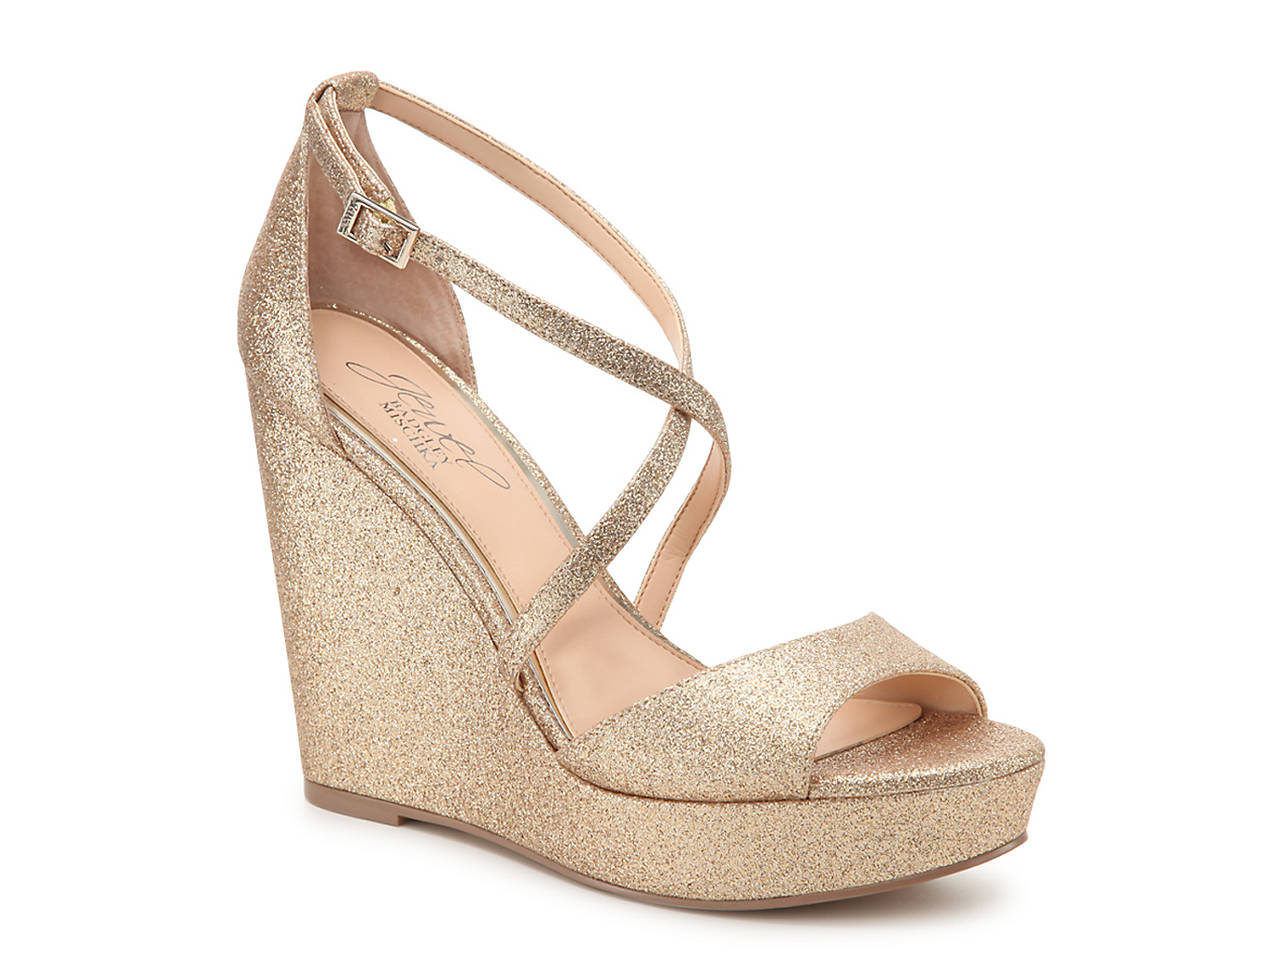 487f4743956f Jewel Badgley Mischka Averie Wedge Sandal Women s Shoes